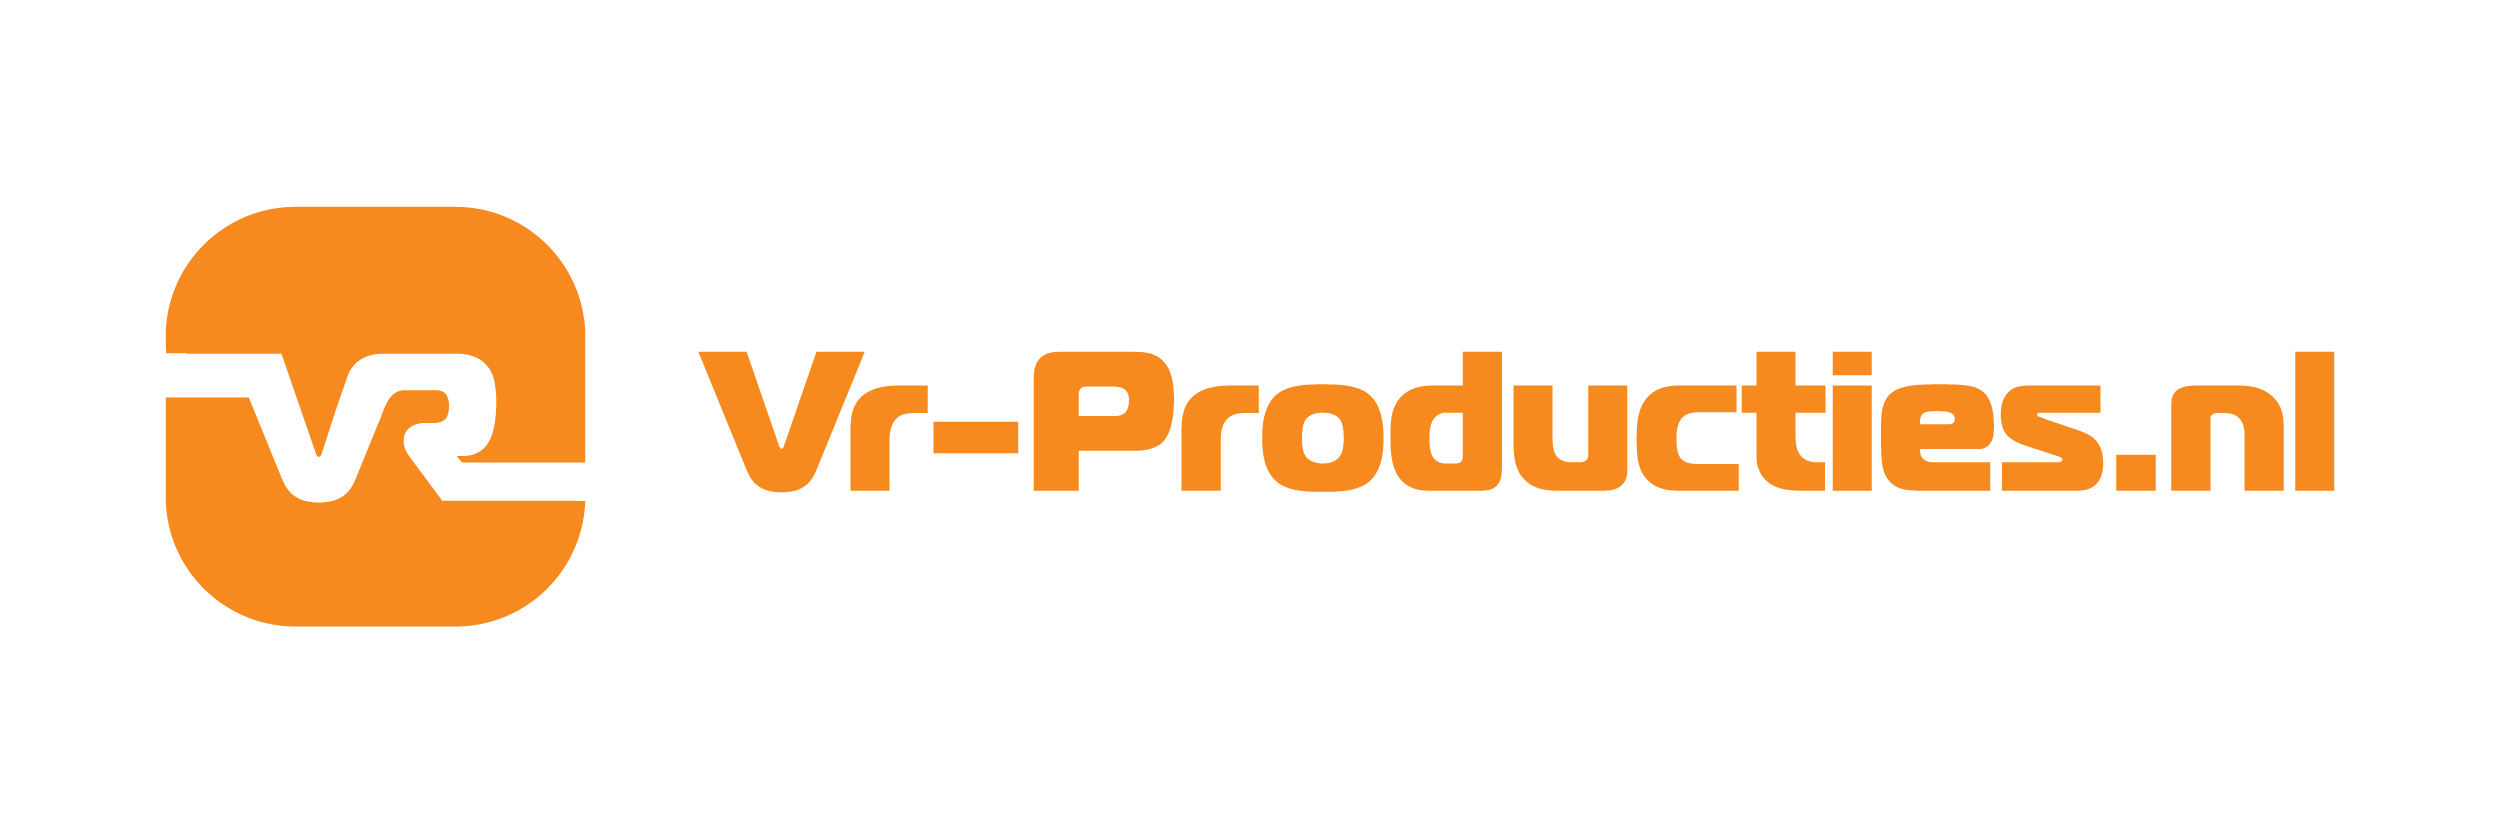 VR-Producties